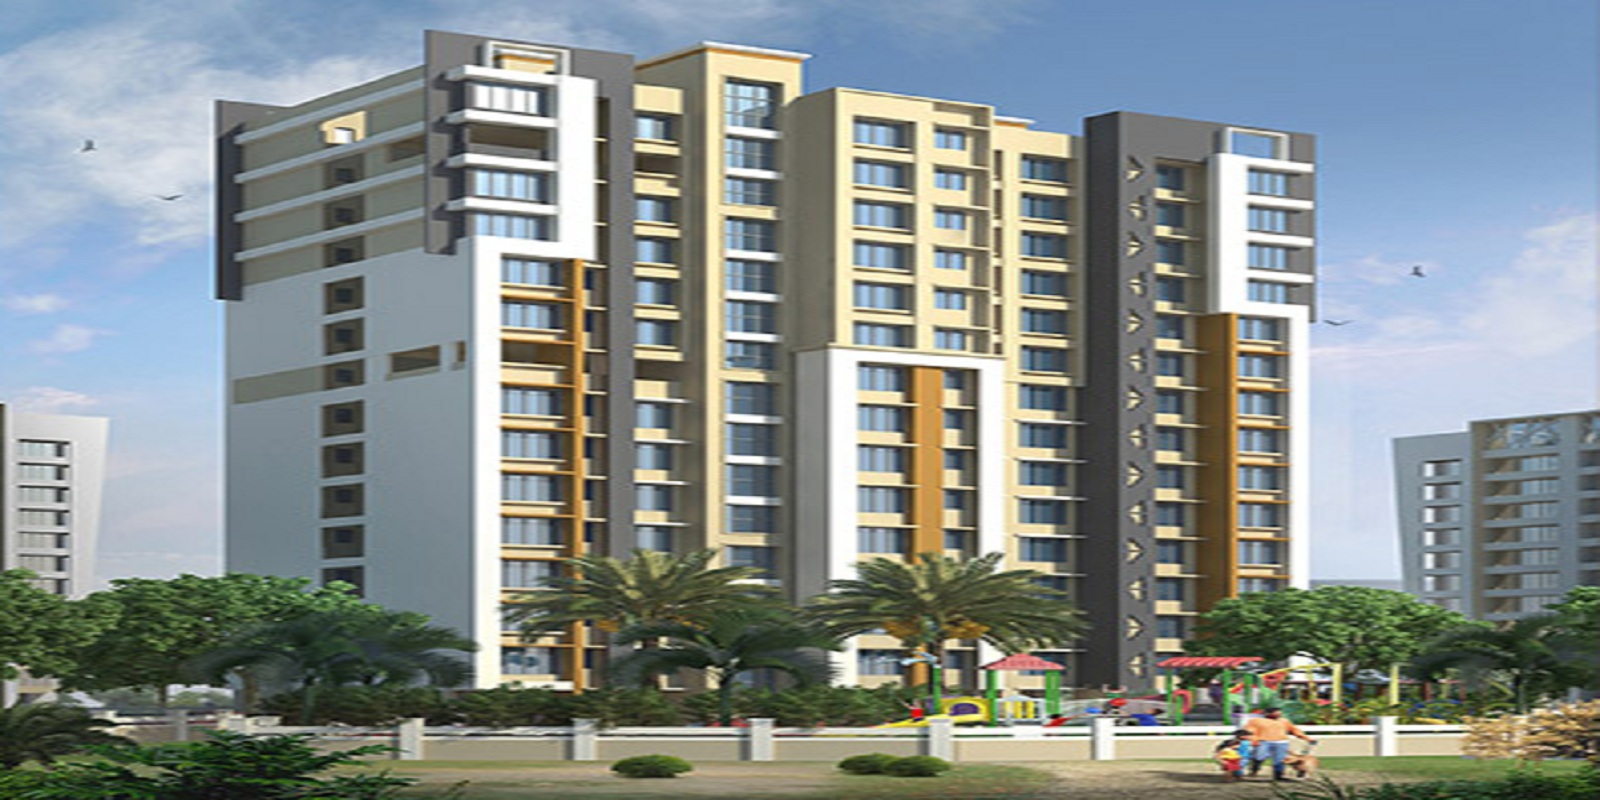 lodha global park project large image2